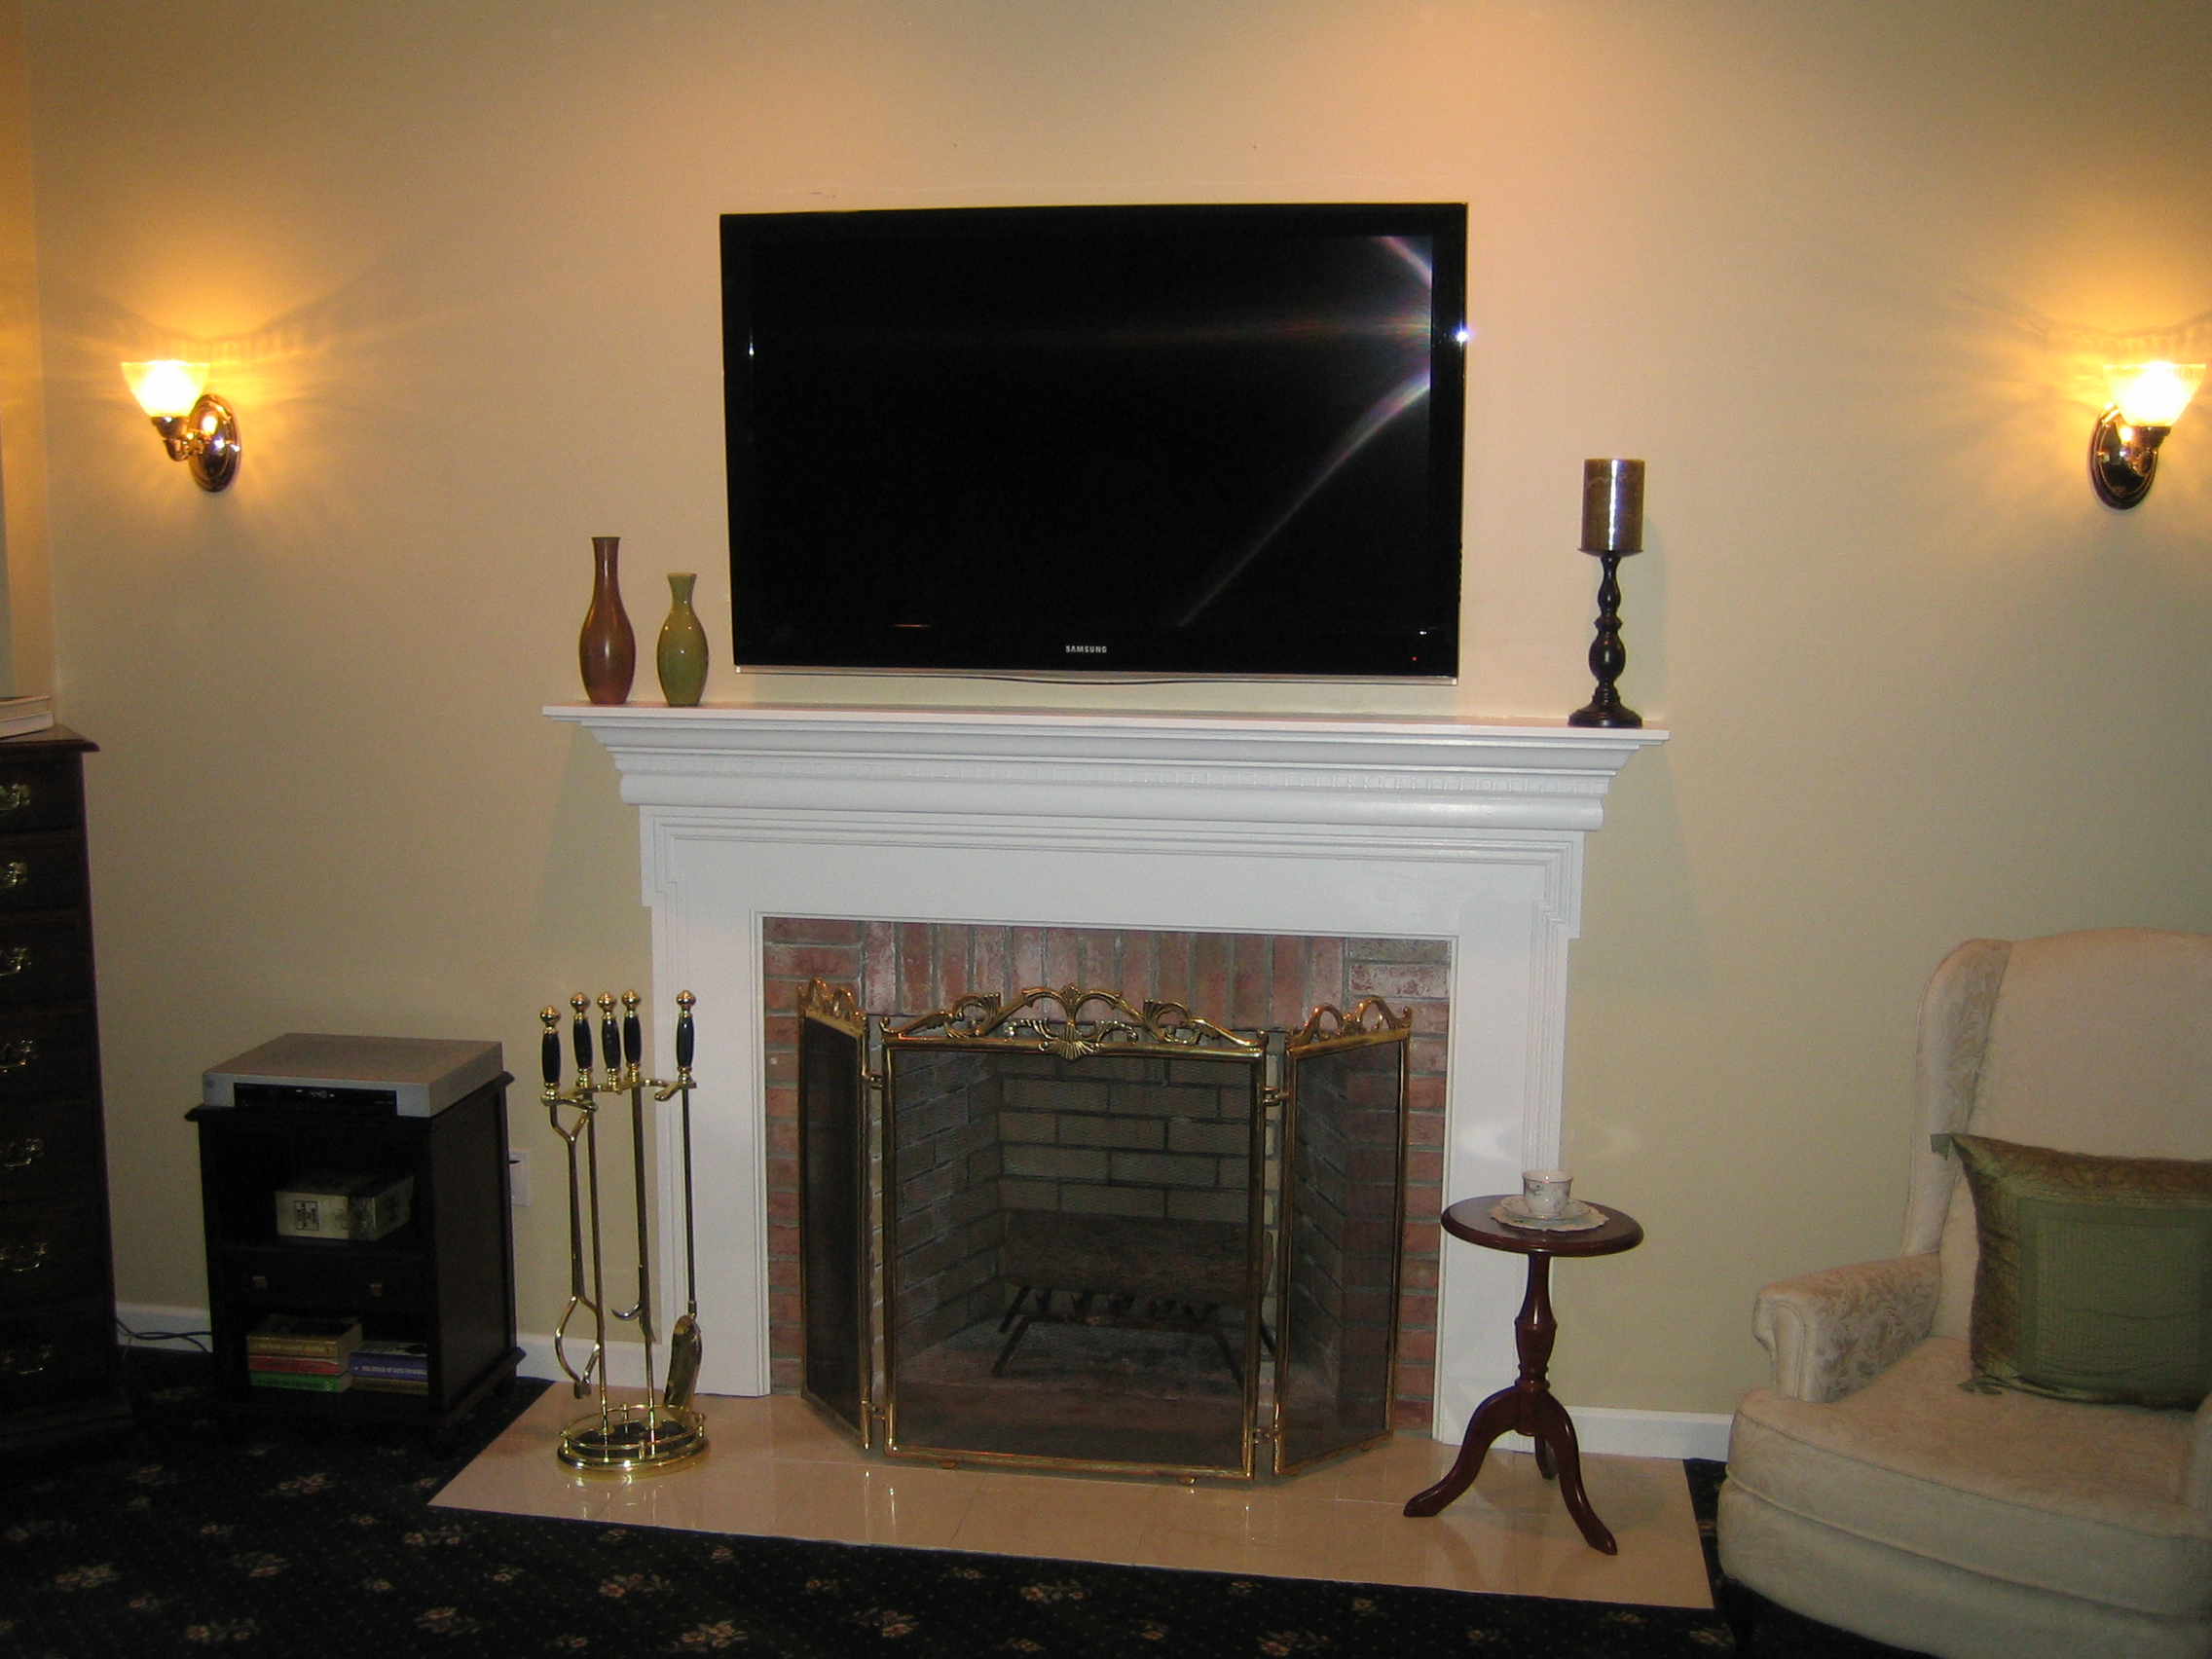 clinton ct mount tv above fireplace home theater installation. Black Bedroom Furniture Sets. Home Design Ideas